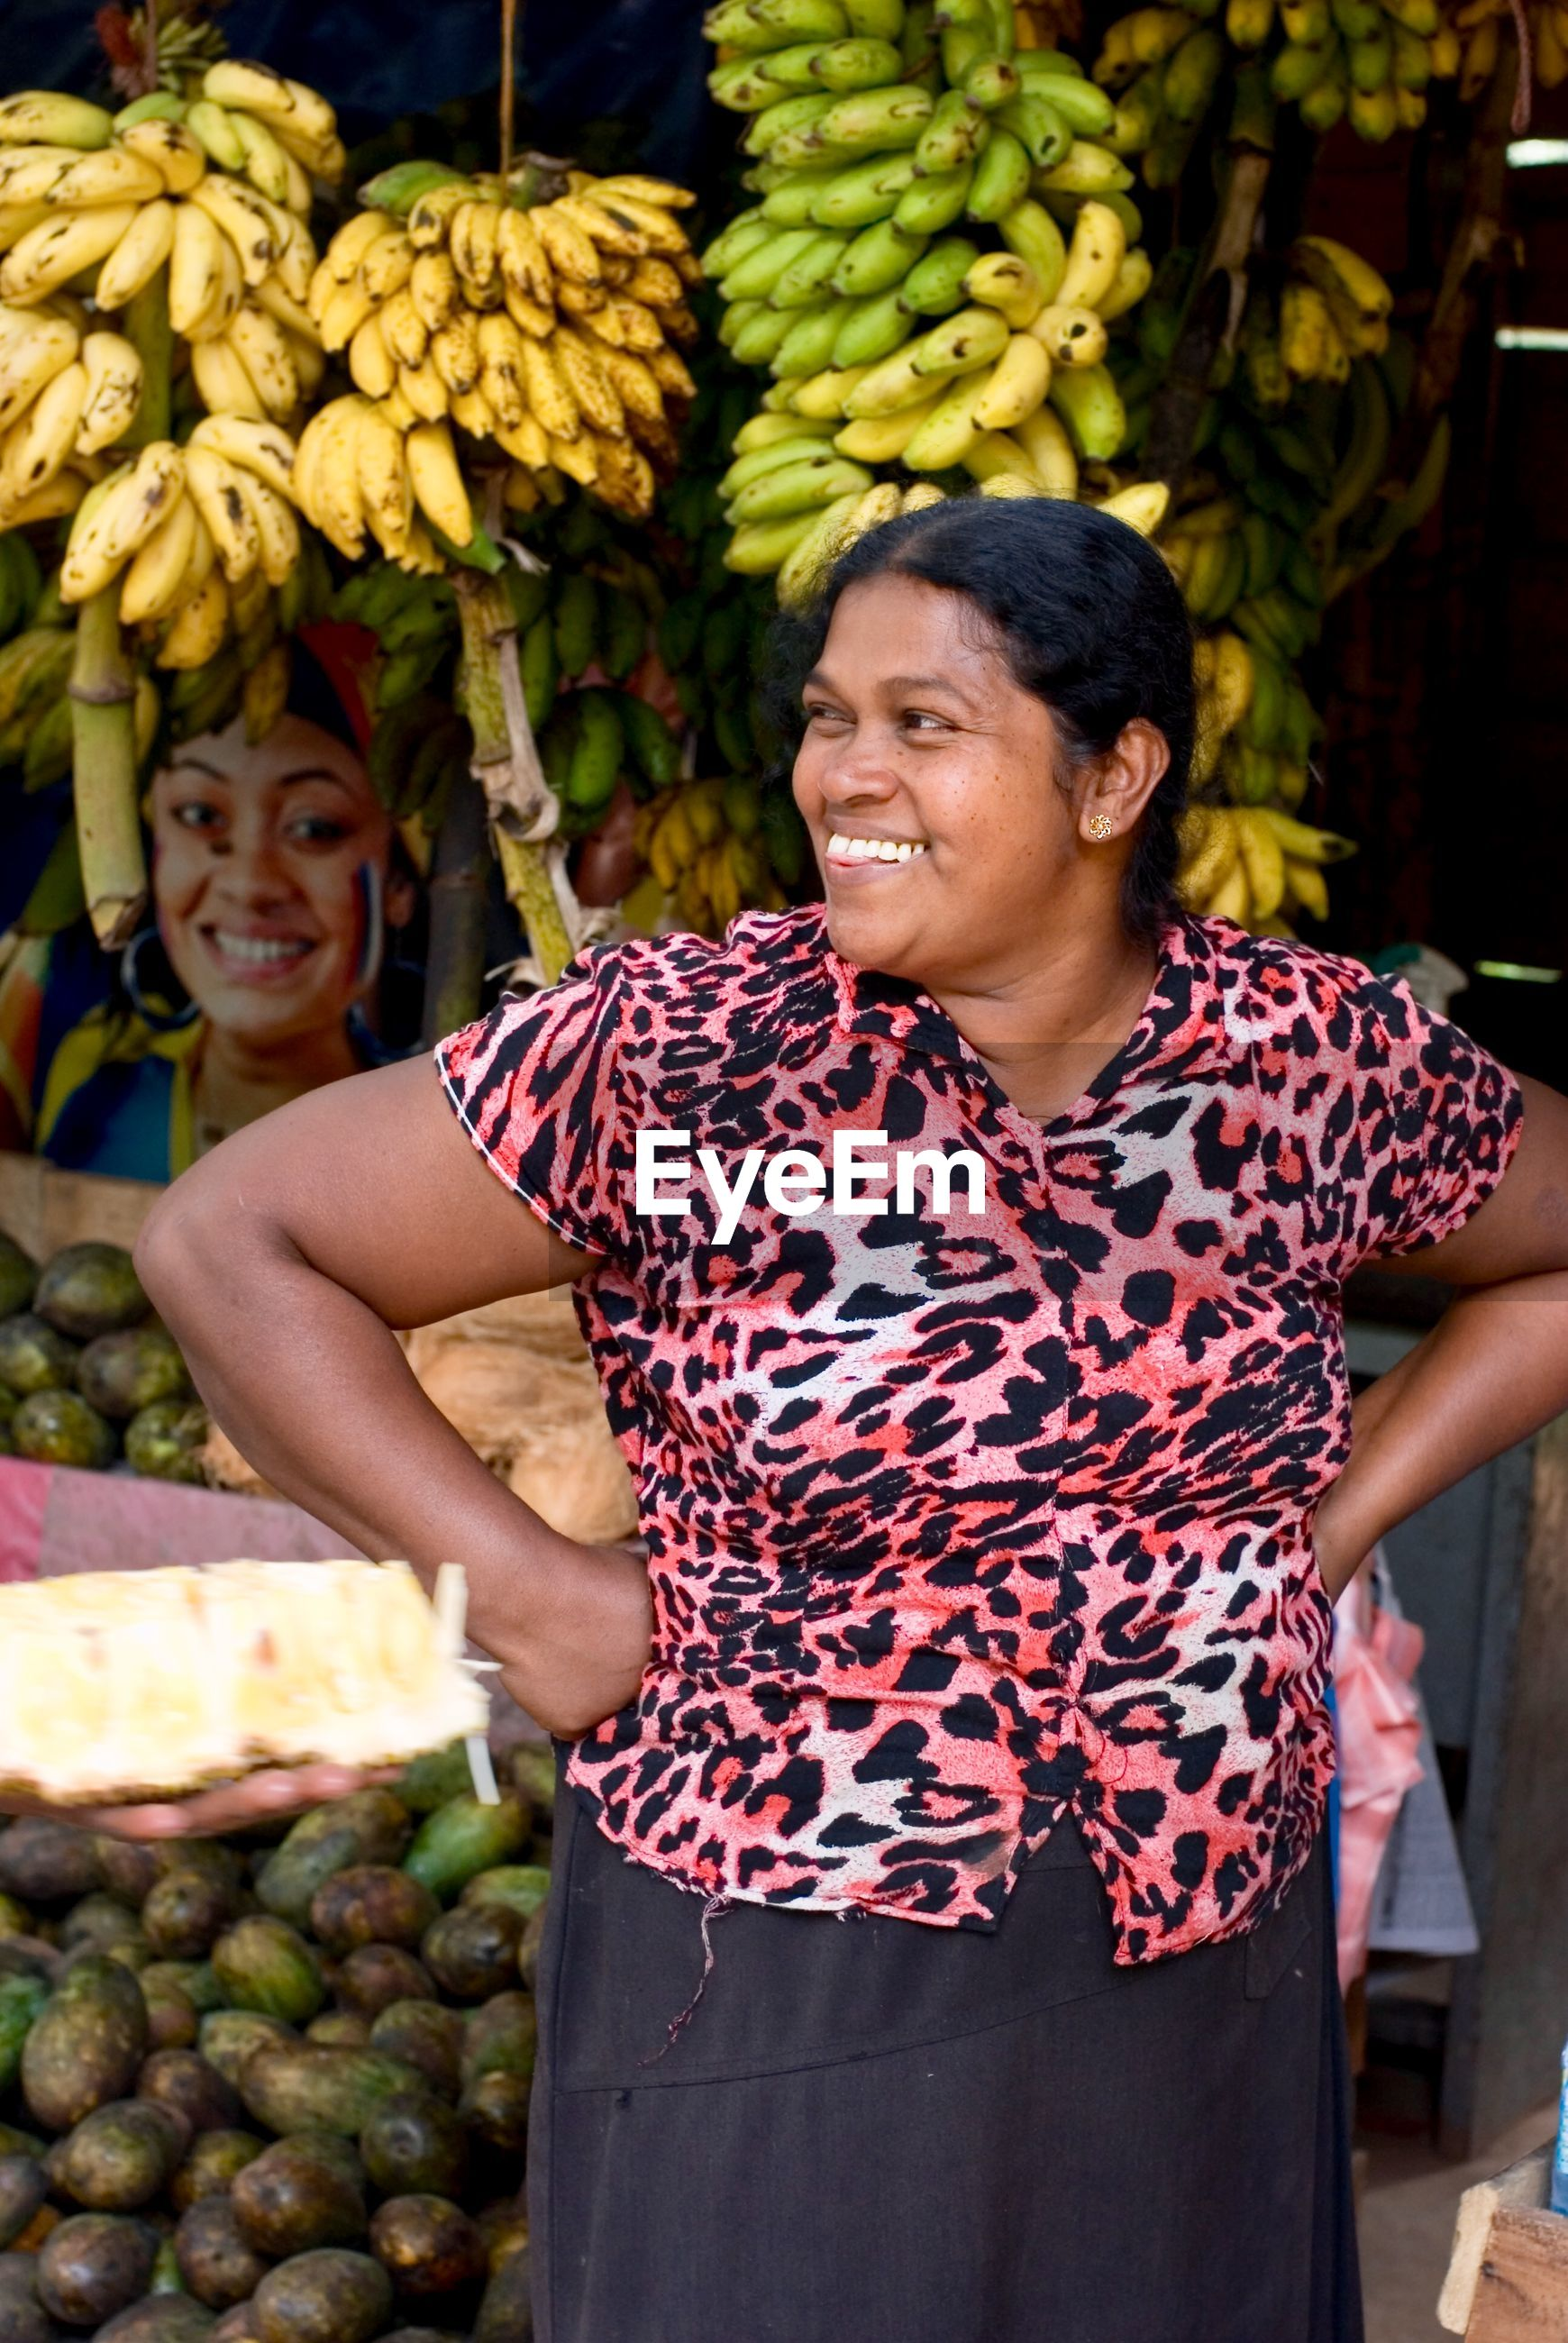 SMILING YOUNG WOMAN WITH FRUITS AT MARKET